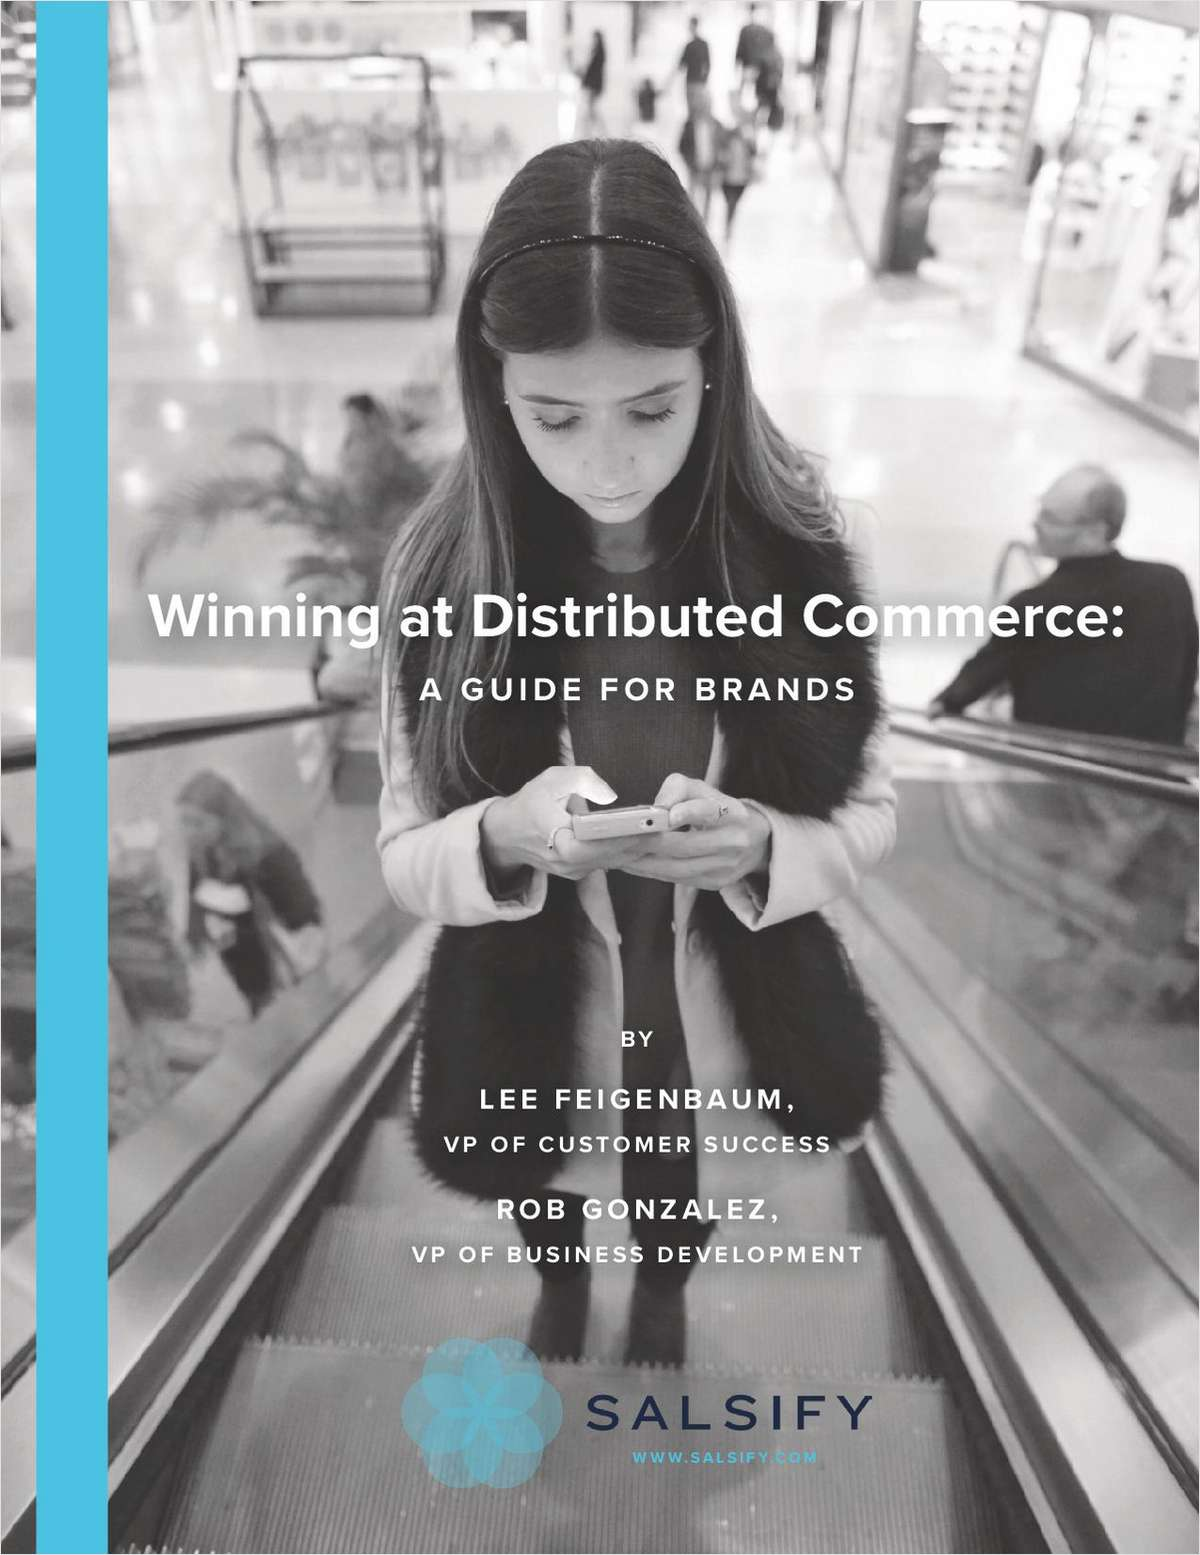 Winning at Distributed Commerce: A Guide for Brands